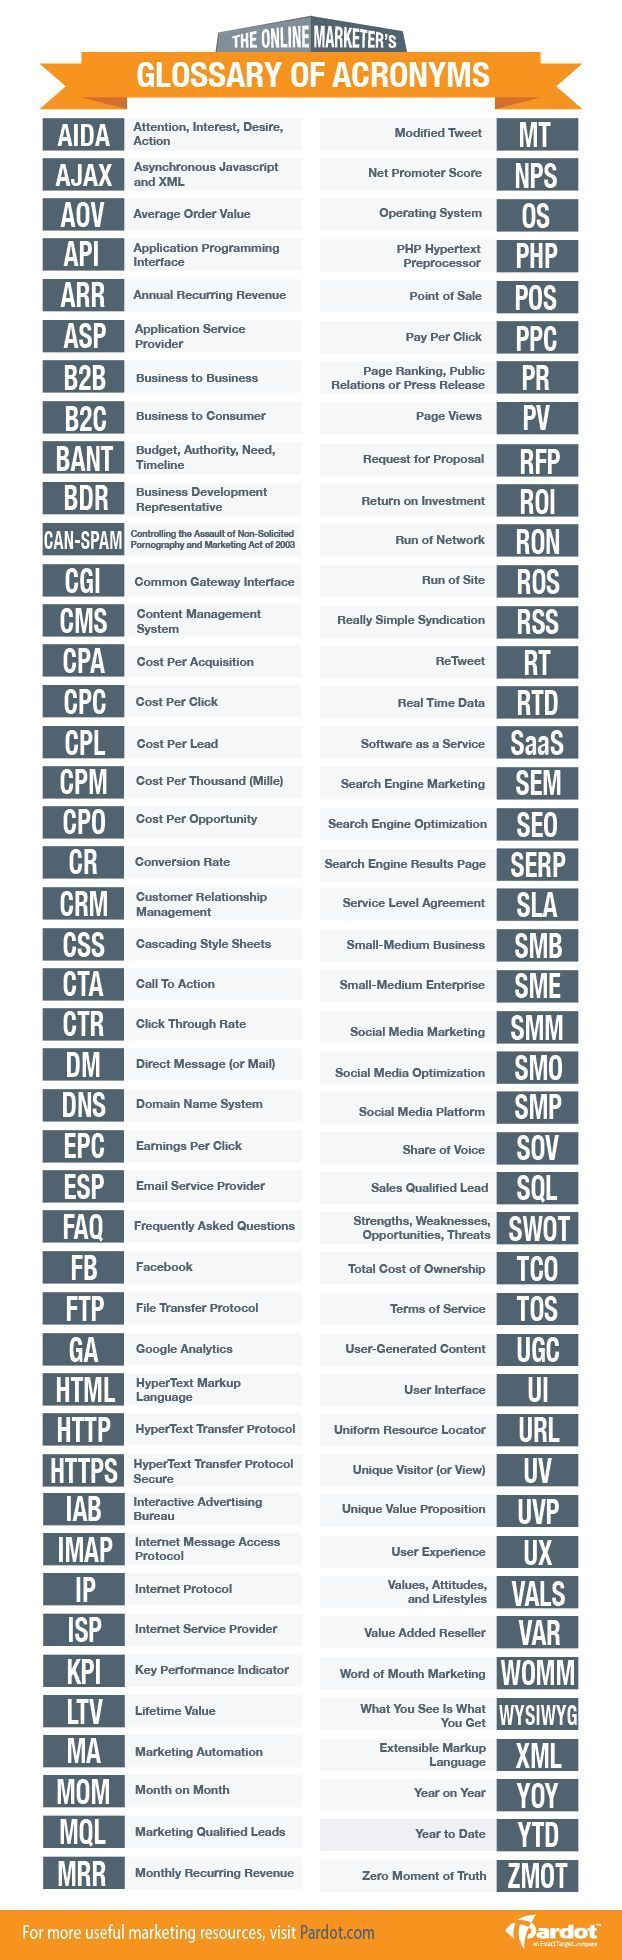 The online marketer's glossary of acronyms #infographic: